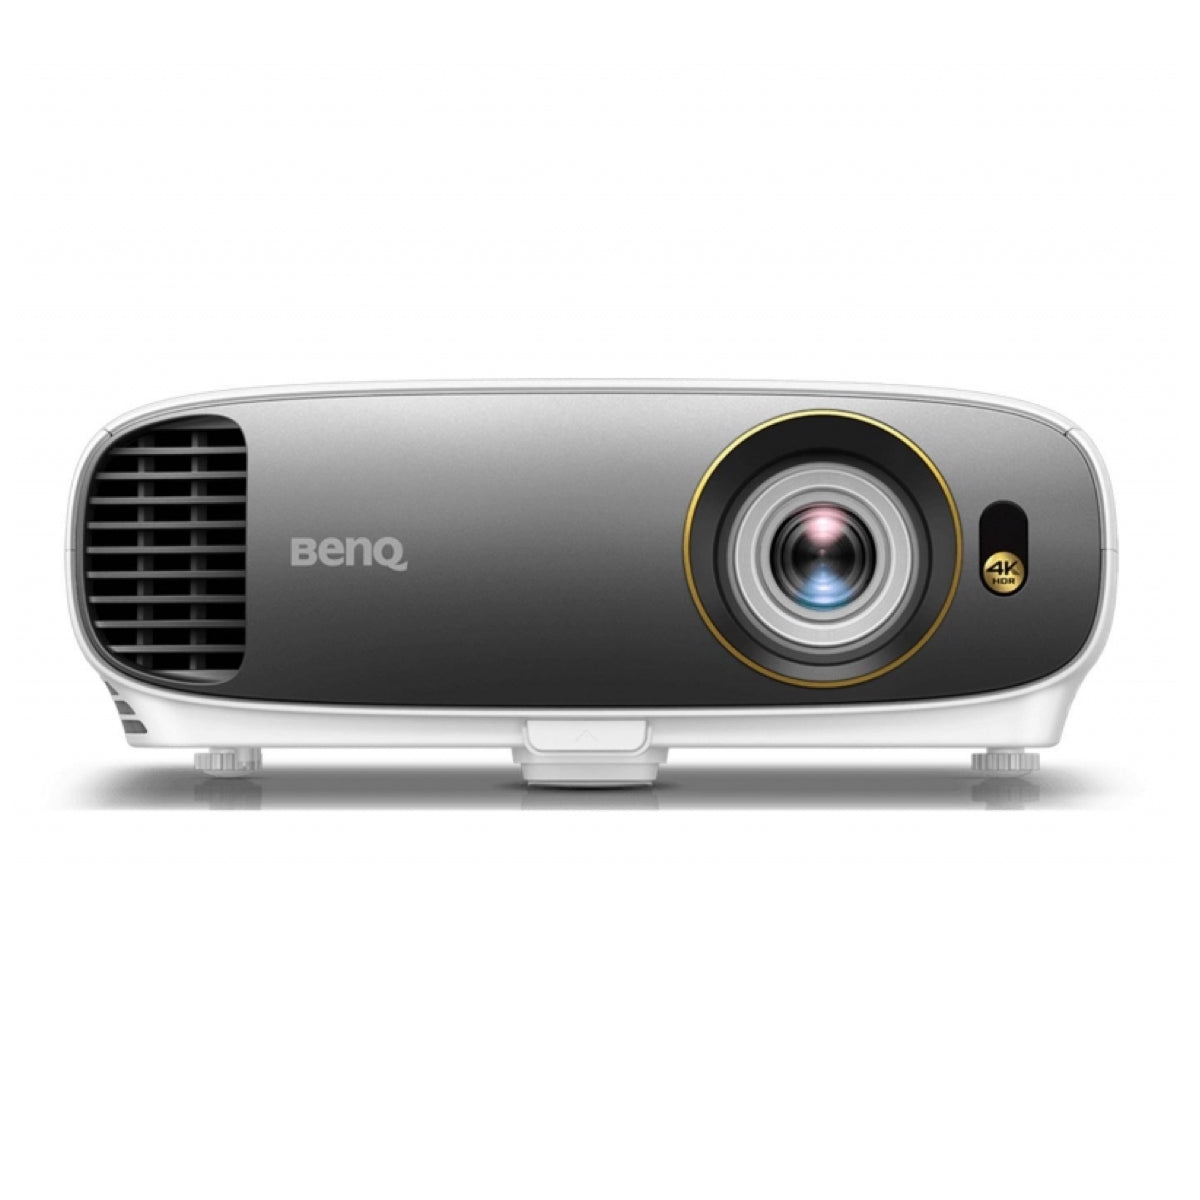 BenQ W1700M - True 4K HDR Home Cinema Projector, Benq, Projector - AVStore.in